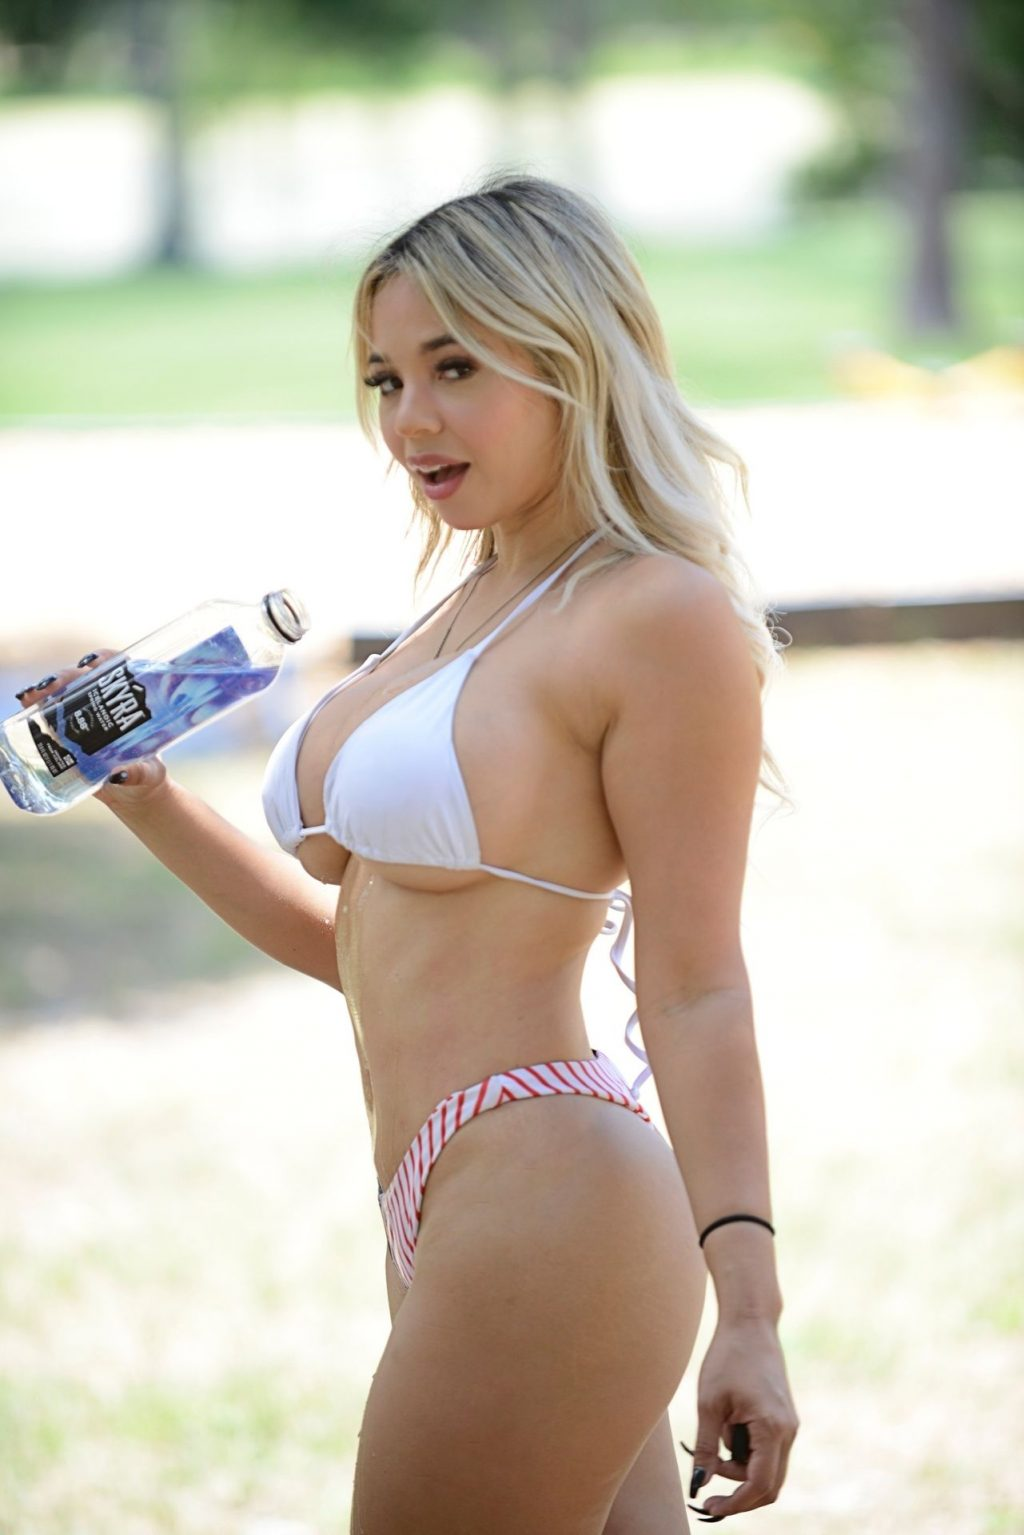 Bella Bunnie Amor Celebrates the 4th of July Wearing a Sexy Two-Piece (20 Photos)